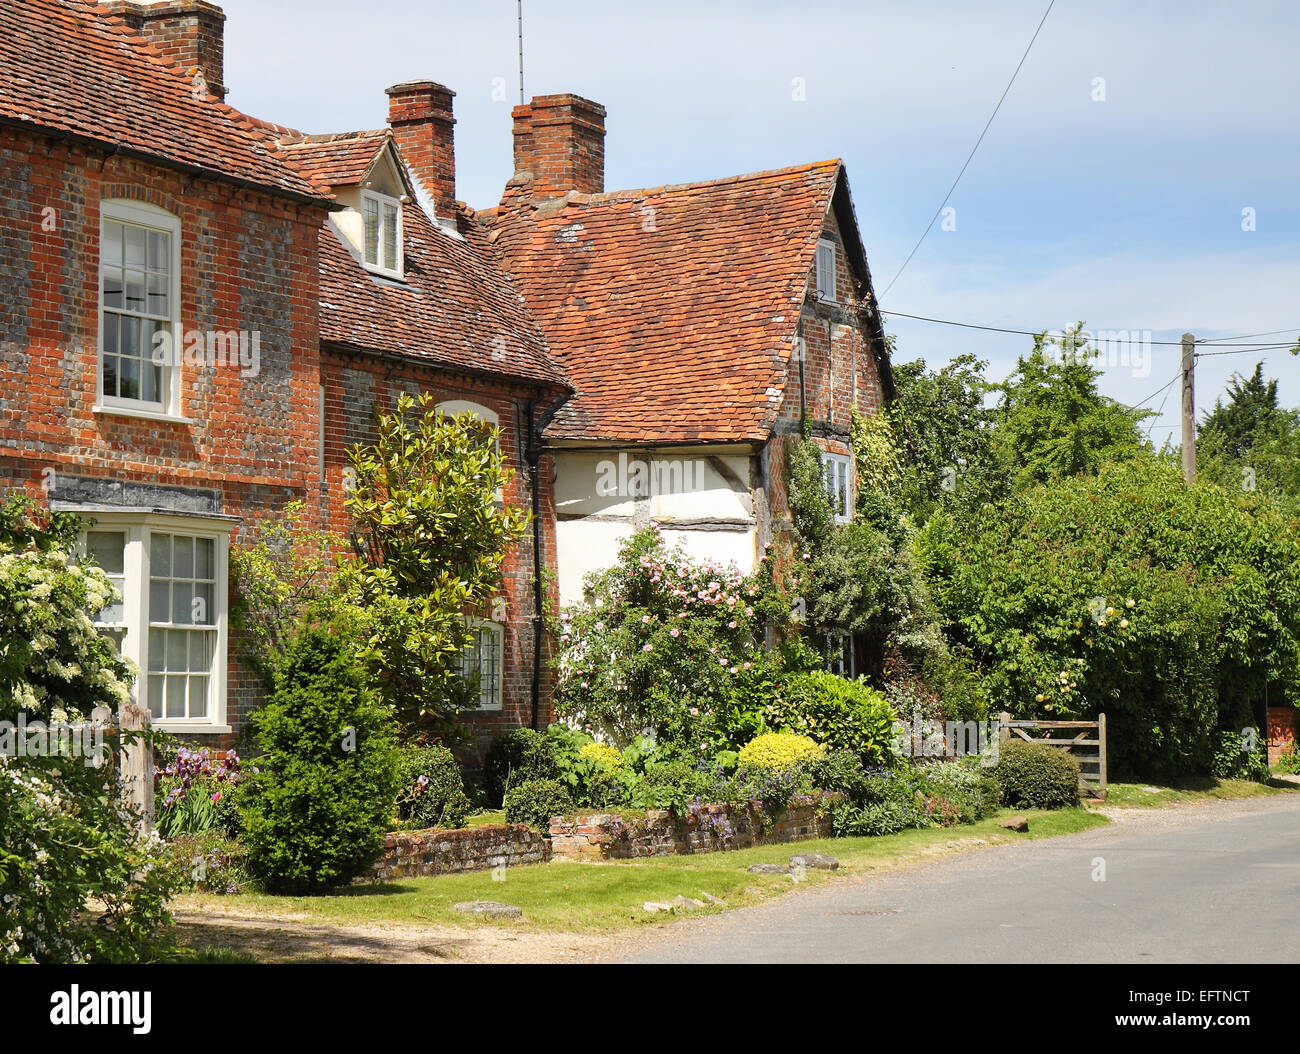 A Row of quaint Cottages in an English Village street in Summer - Stock Image